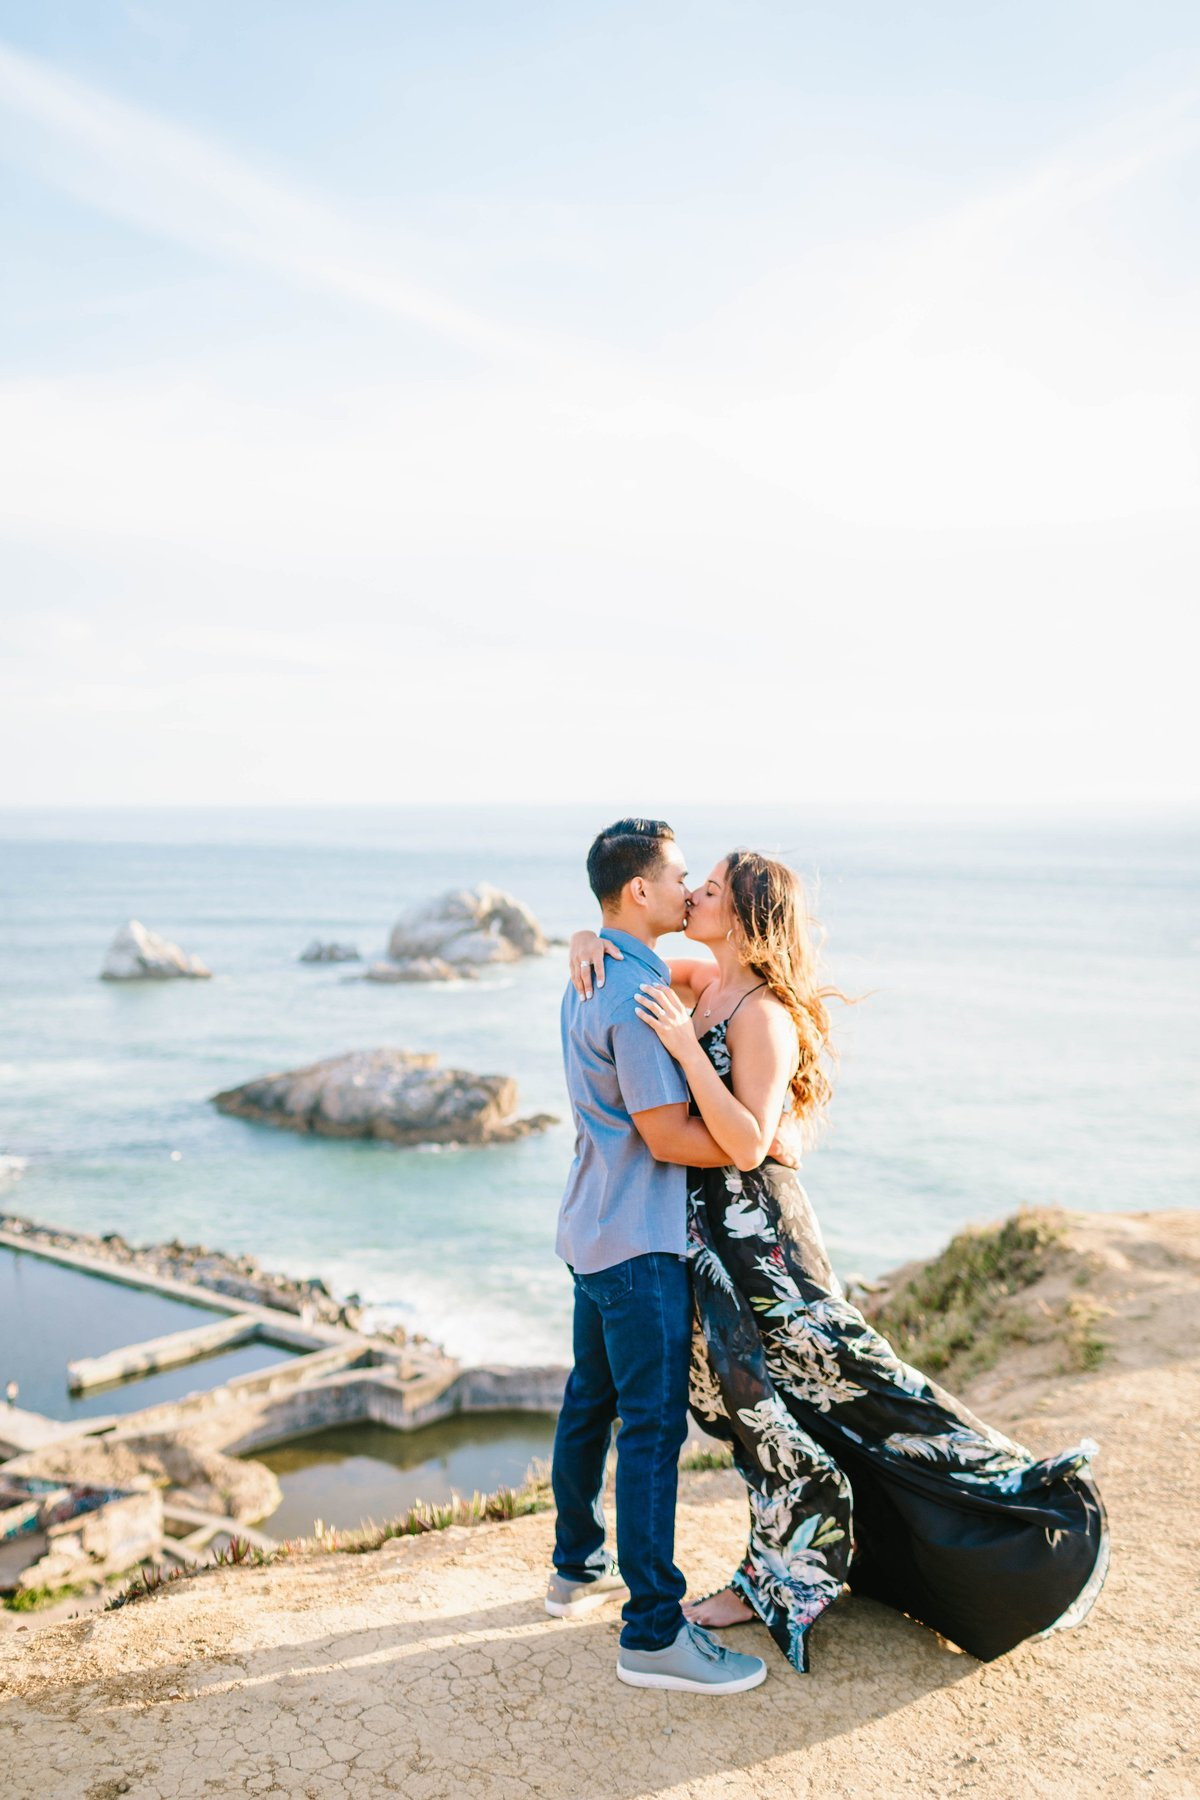 Best California Engagement Photographer_Jodee Debes Photography_176